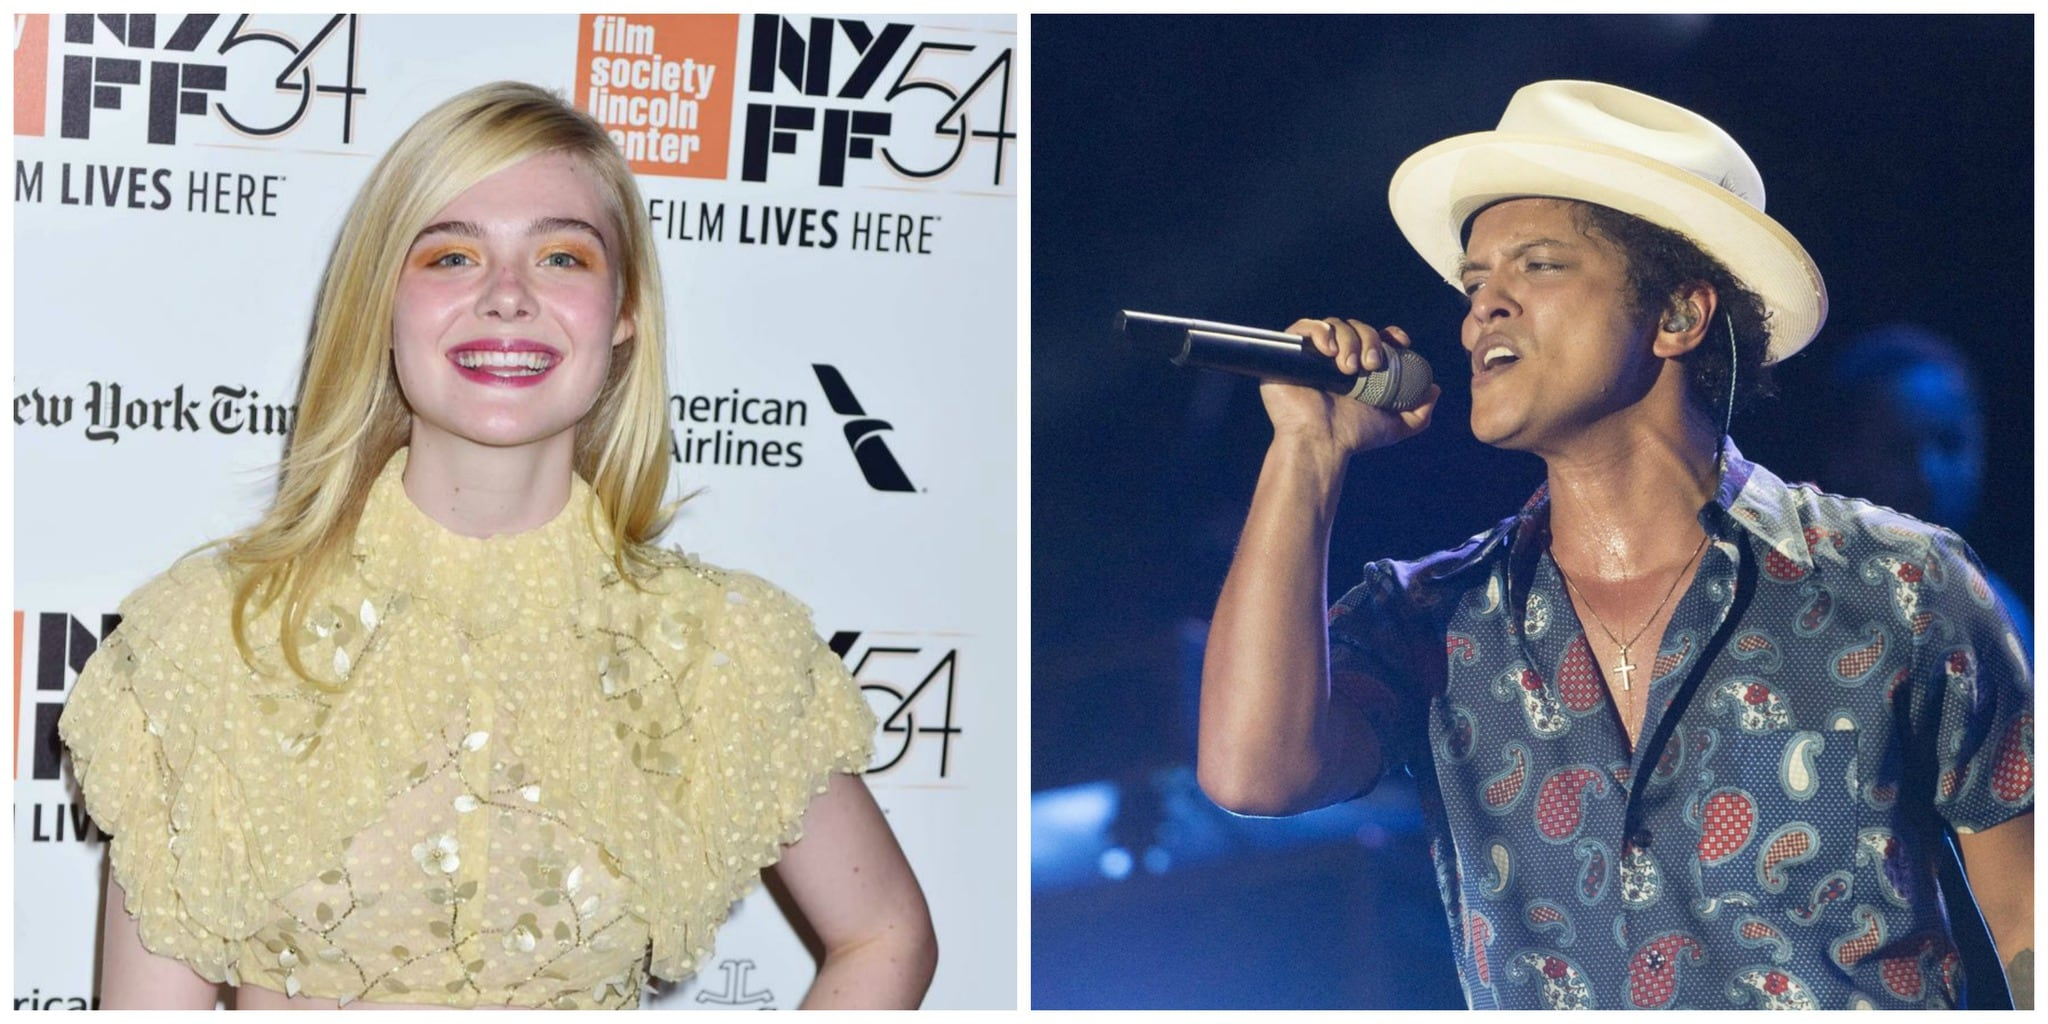 Elle Fanning in a yellow dress and Bruno Mars in a printed short sleeve shirt and straw hat